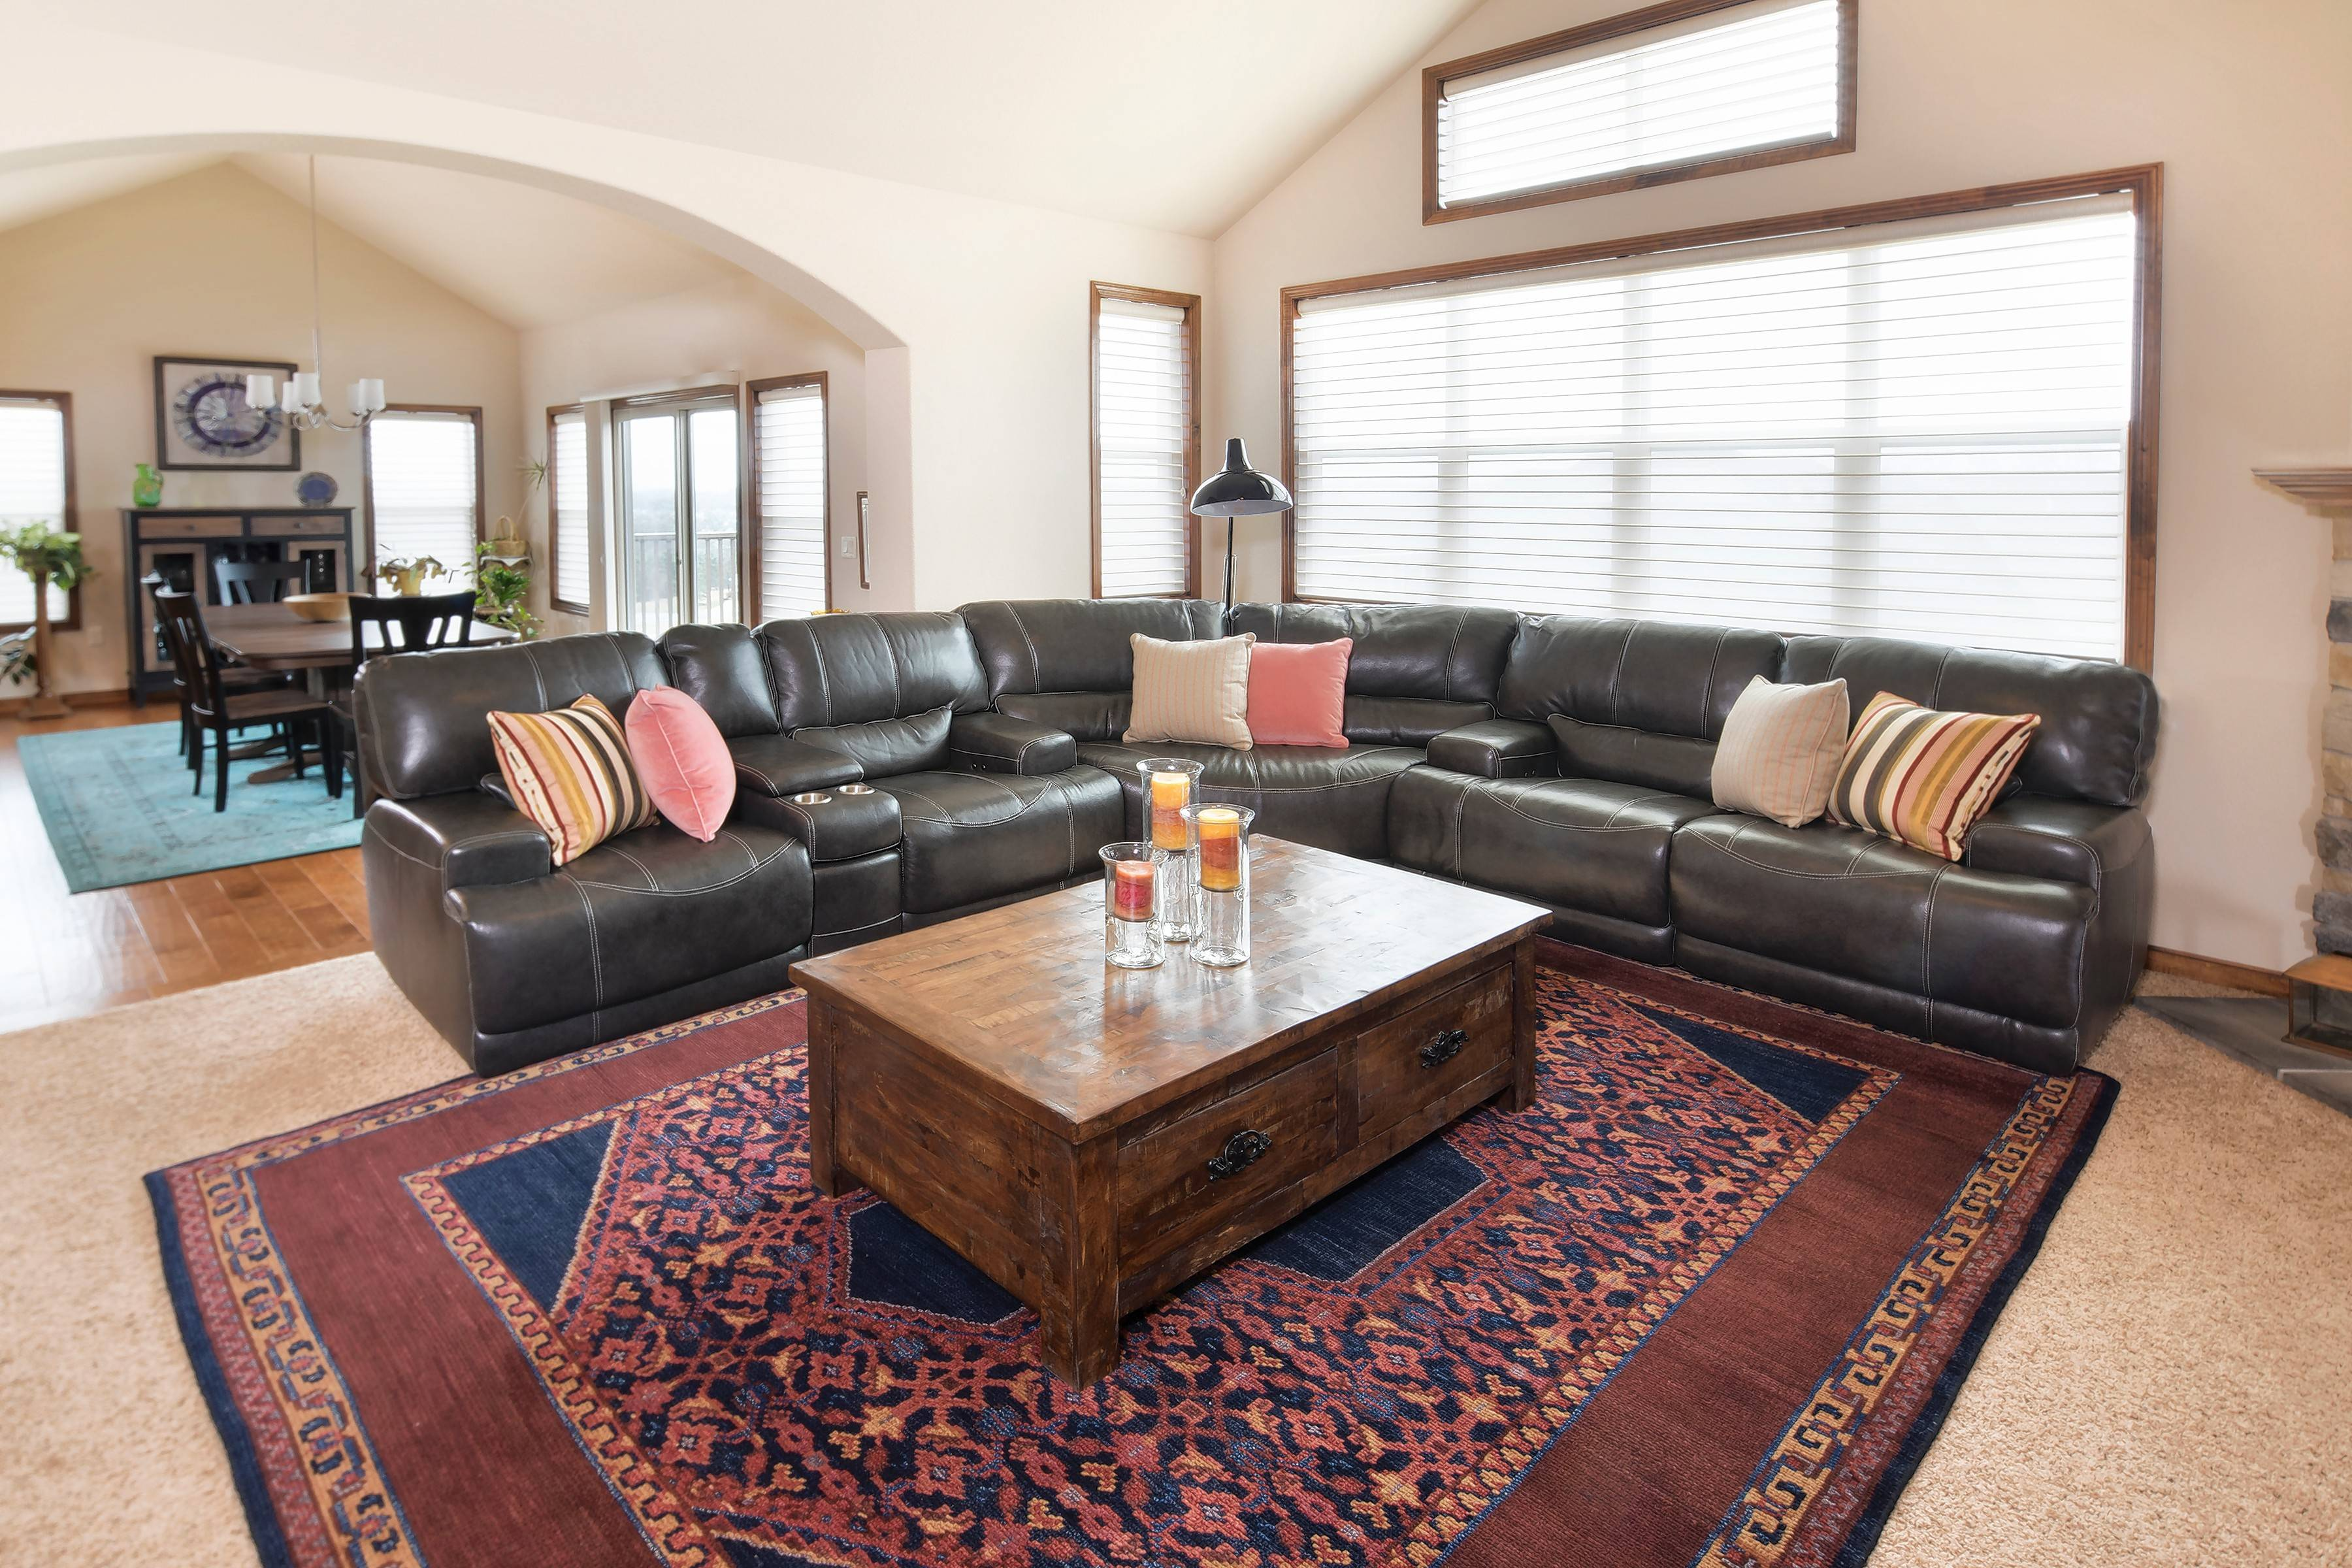 Adding an area rug, even over carpeting, is another way to brighten up a room.